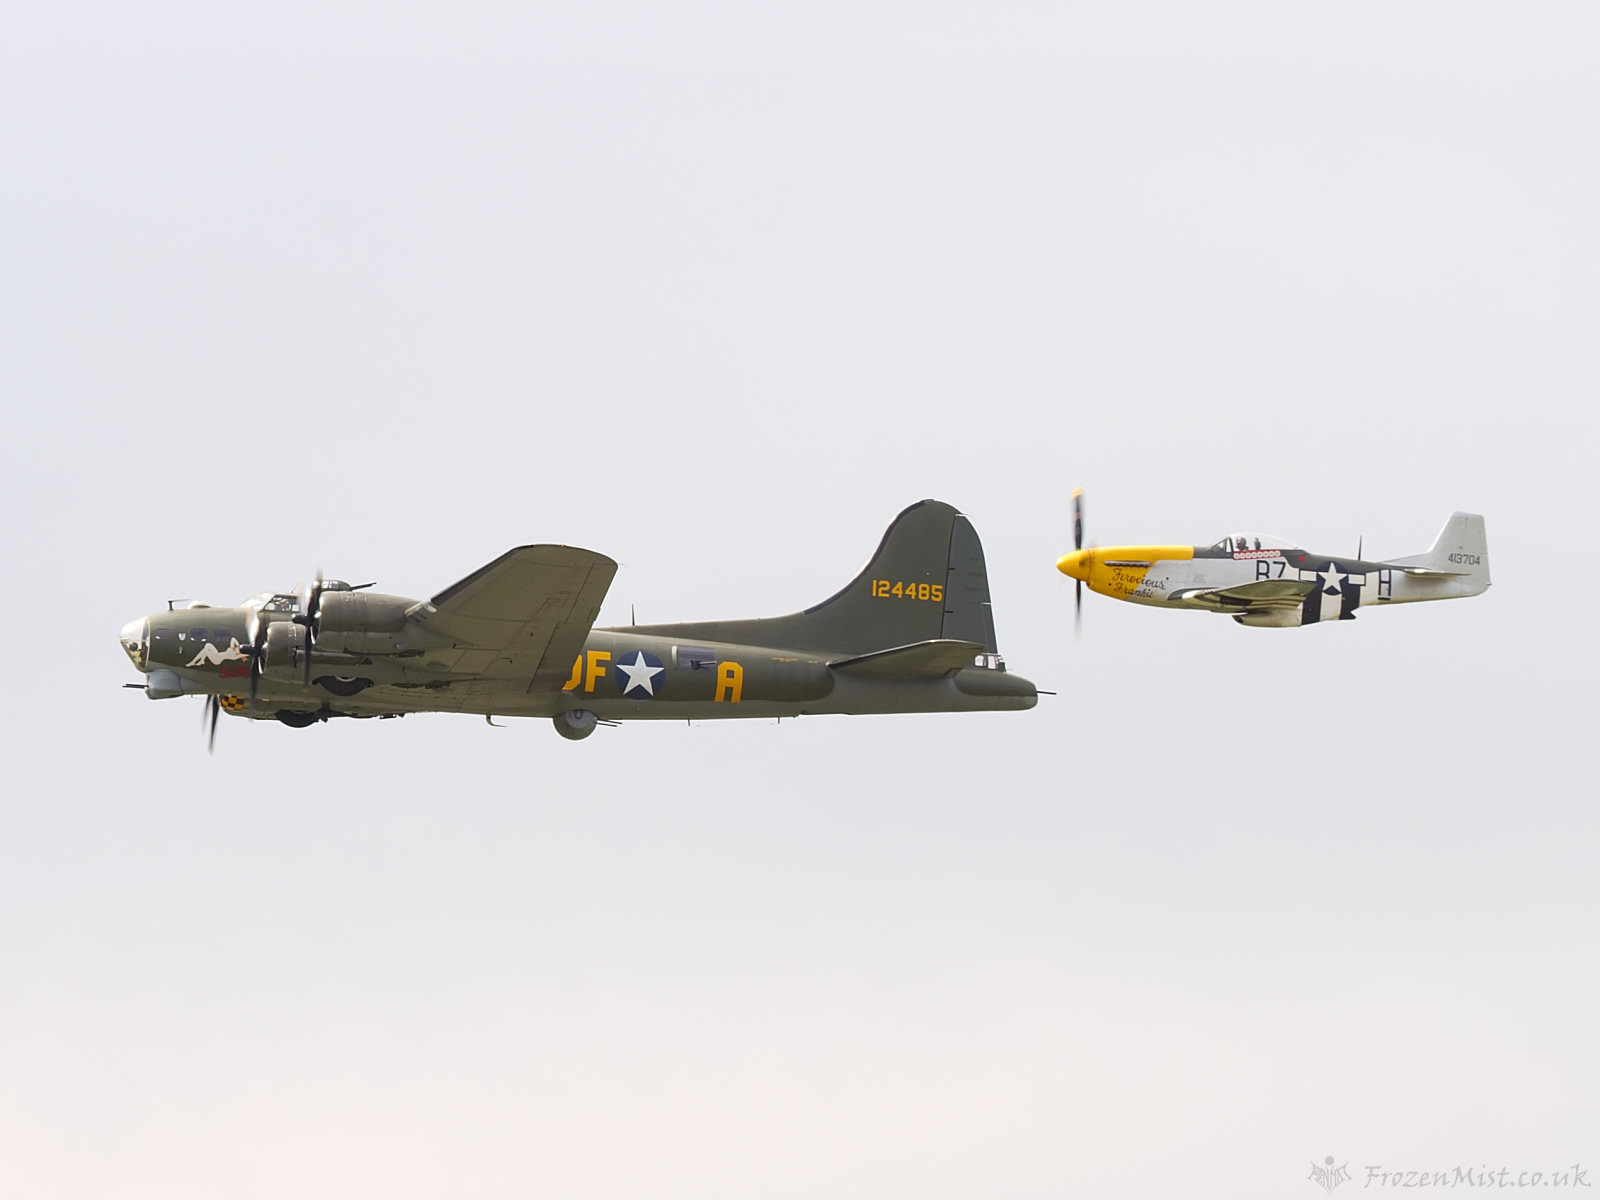 Boeing B17 And P 51 Mustang Wallpaper Frozenmist